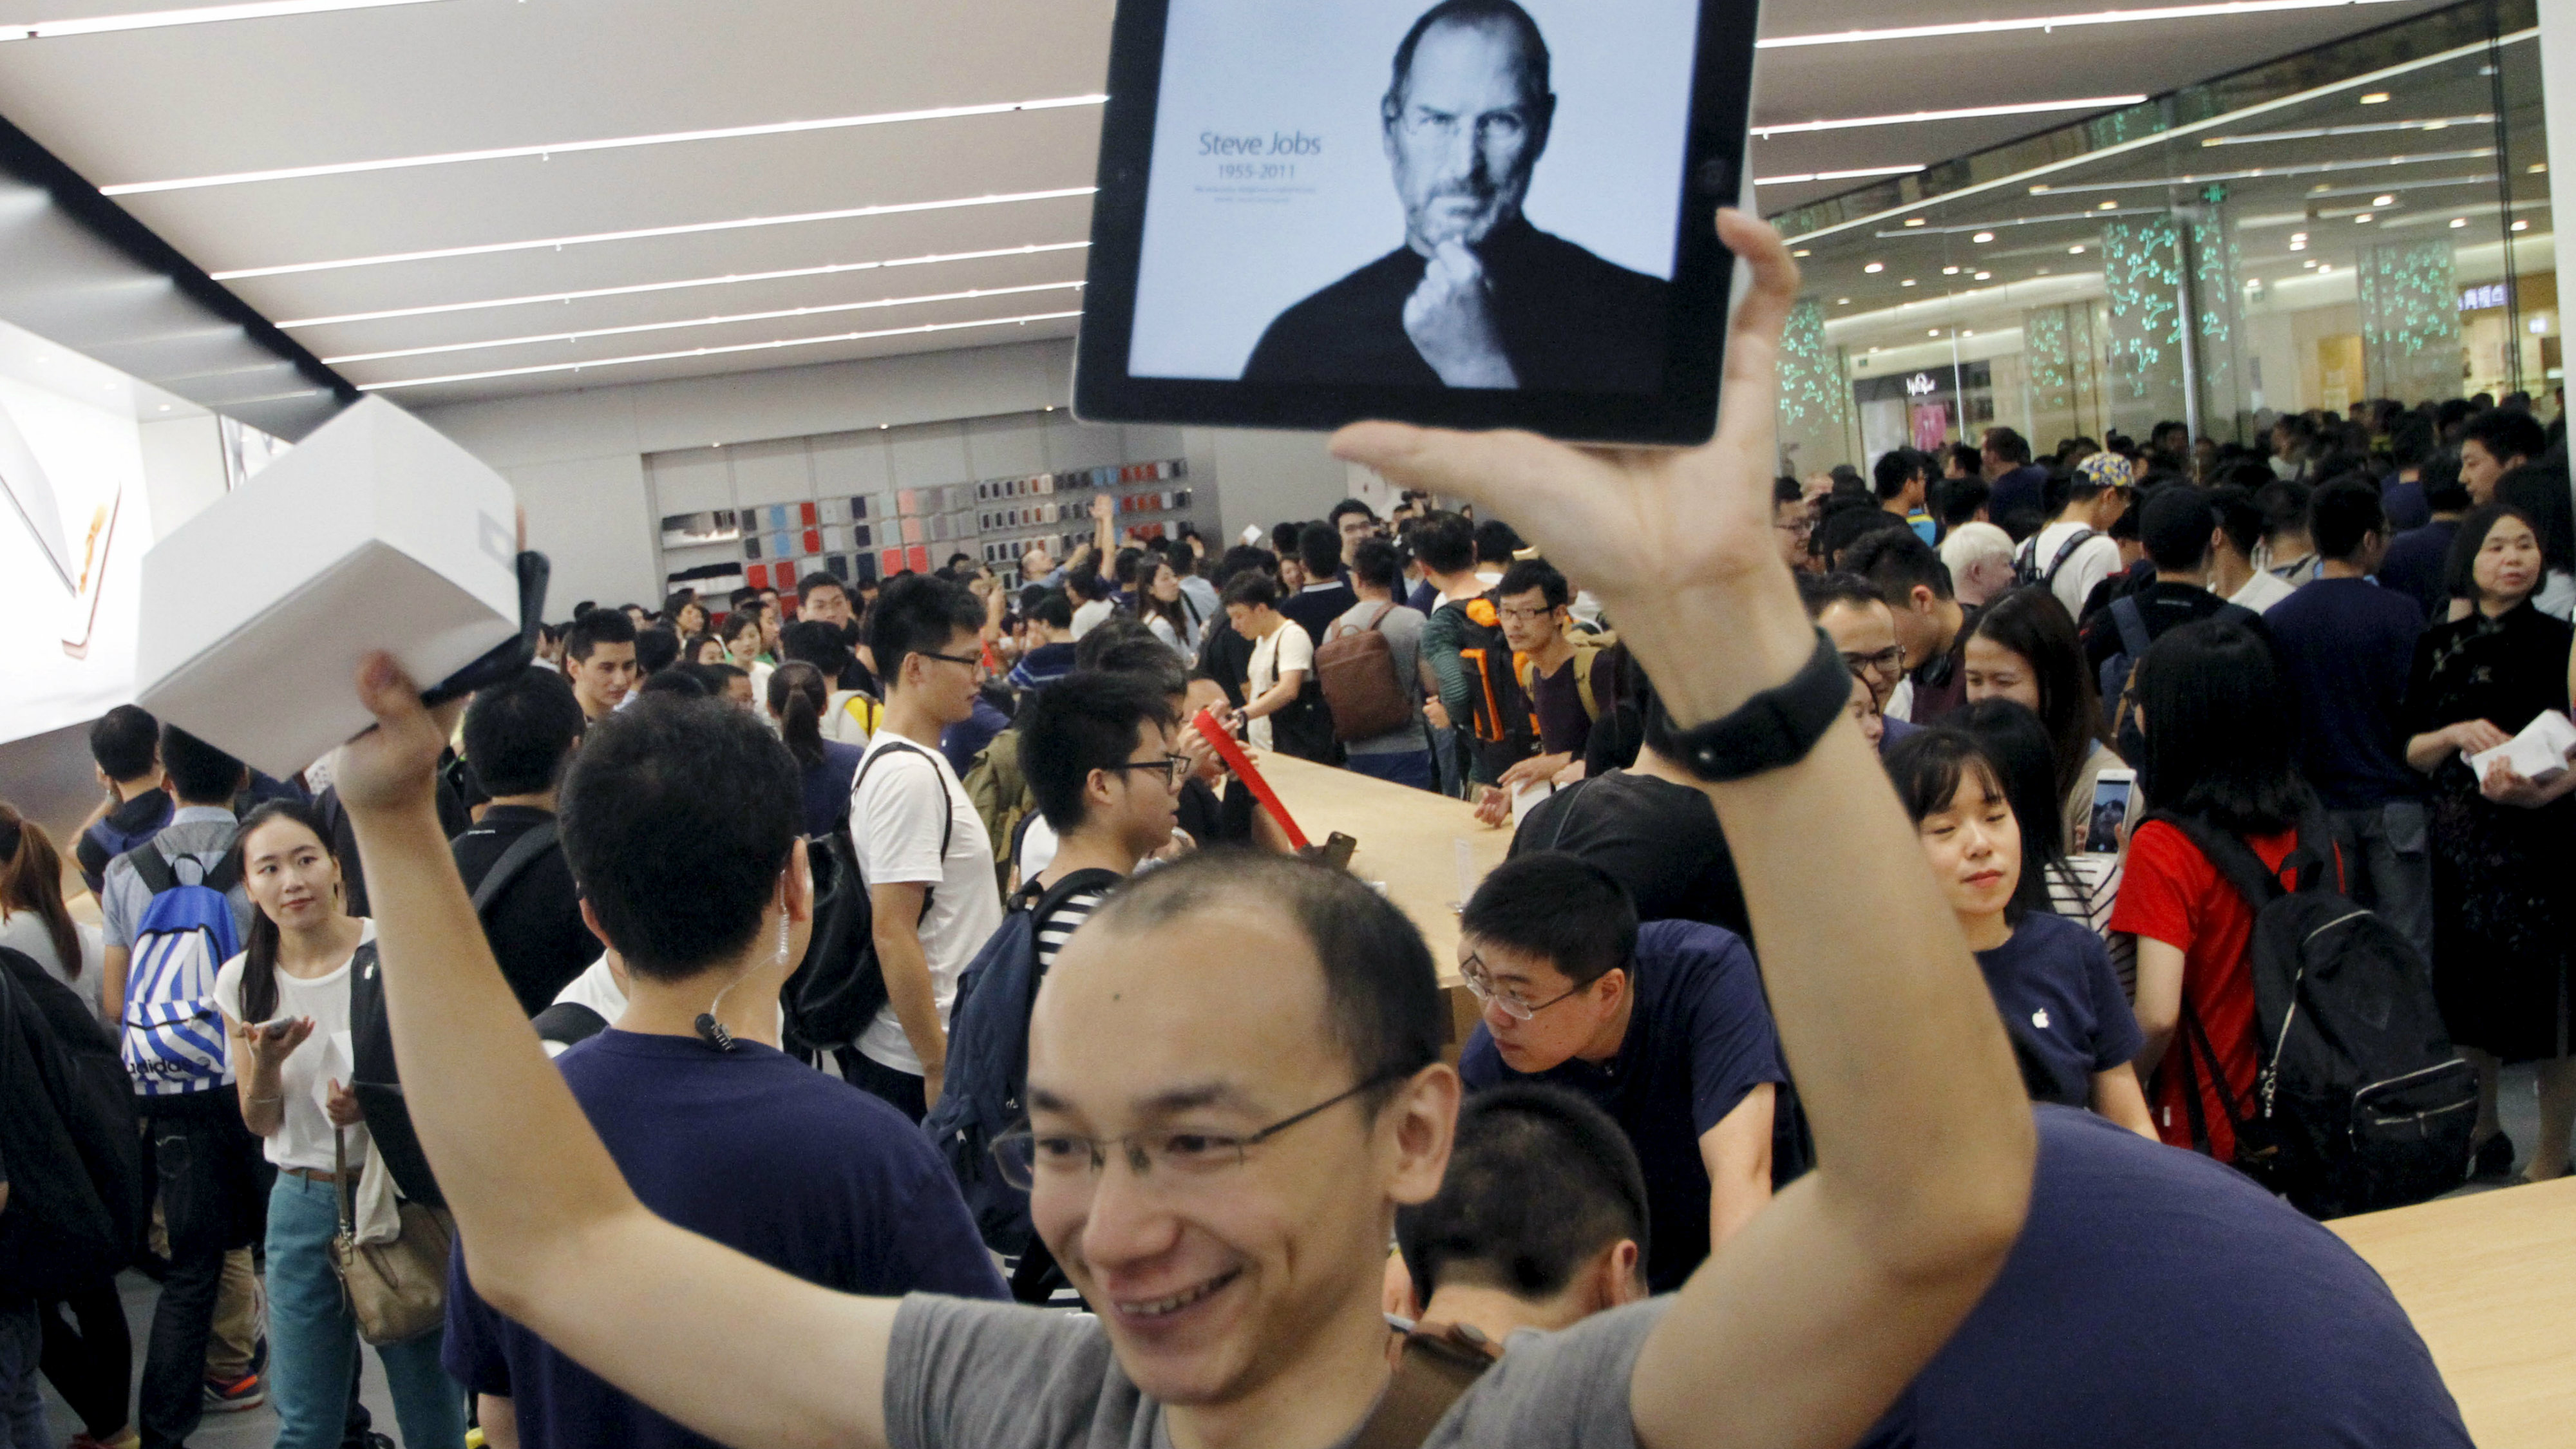 A customer holds an iPad displaying a picture of Steve Jobs, during the opening of a new Apple Store in Nanjing, Jiangsu province, September 19, 2015. Picture taken September 19, 2015. REUTERS/Stringer CHINA OUT. NO COMMERCIAL OR EDITORIAL SALES IN CHINA